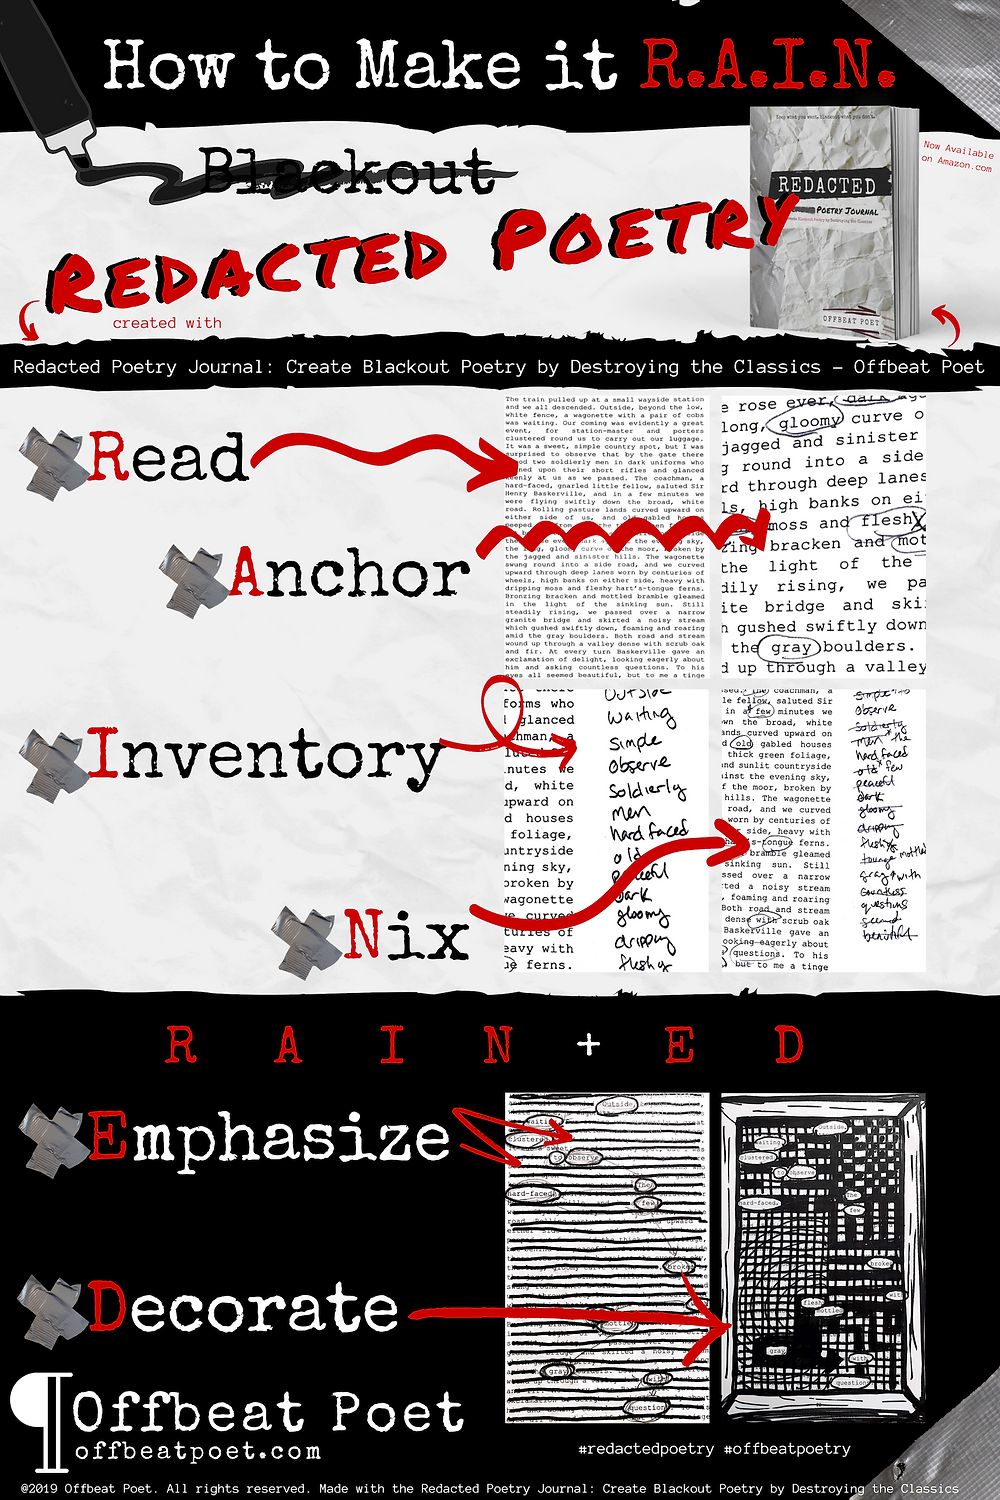 Redacted Poetry Journal: Create Blackout Poetry by Destroying the Classics - Offbeat Poet